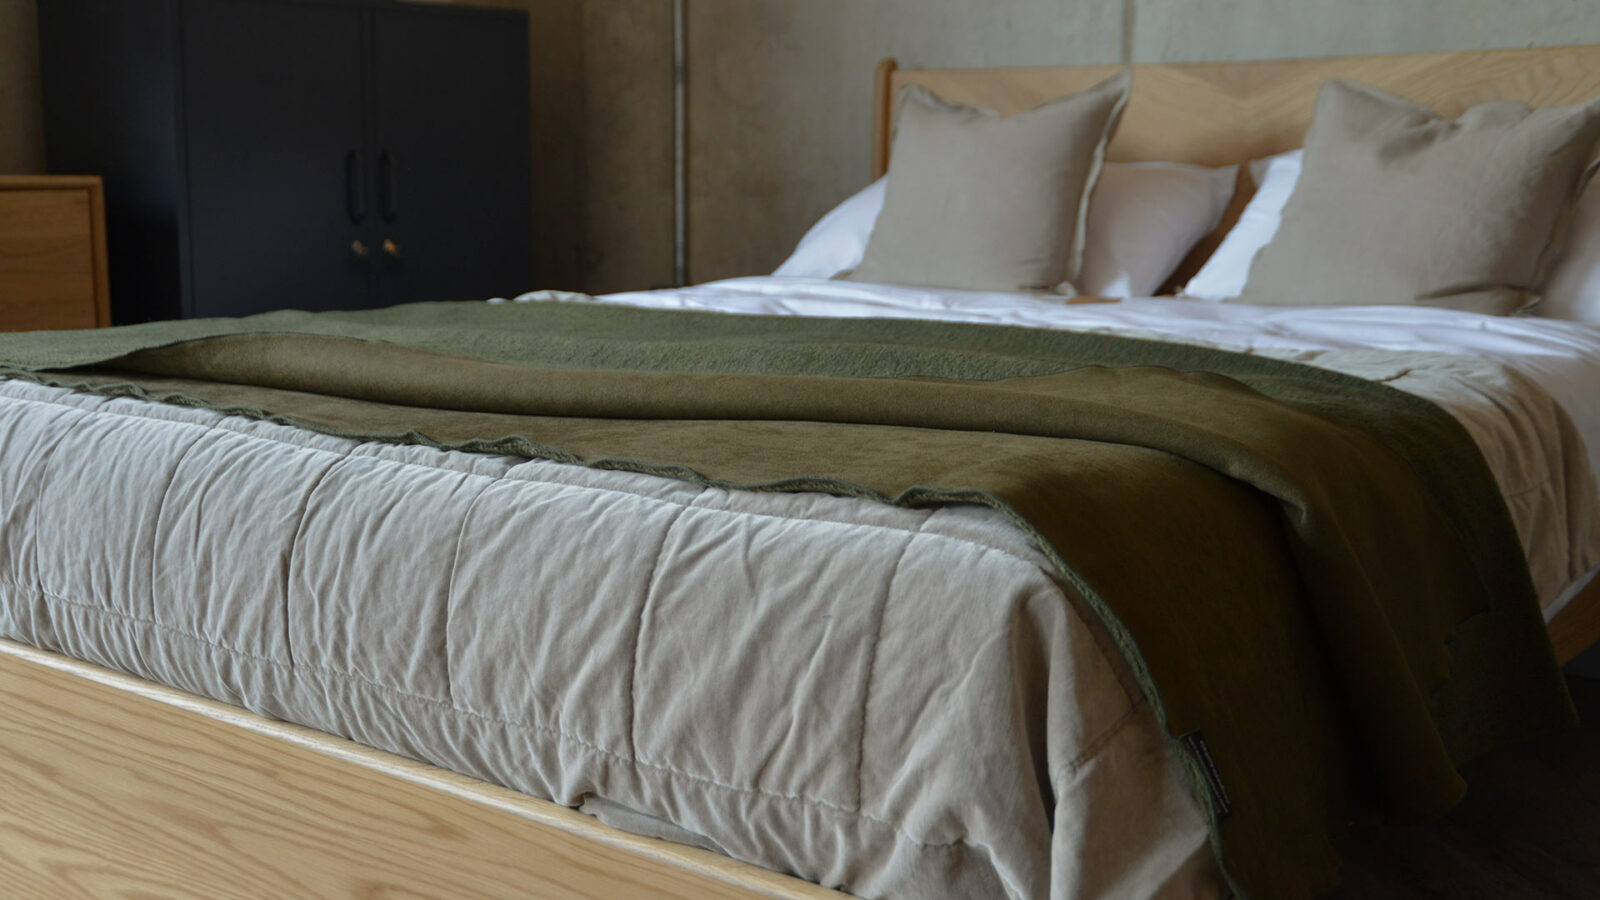 faux sheepskin throw in olive green shown on the end of a bed